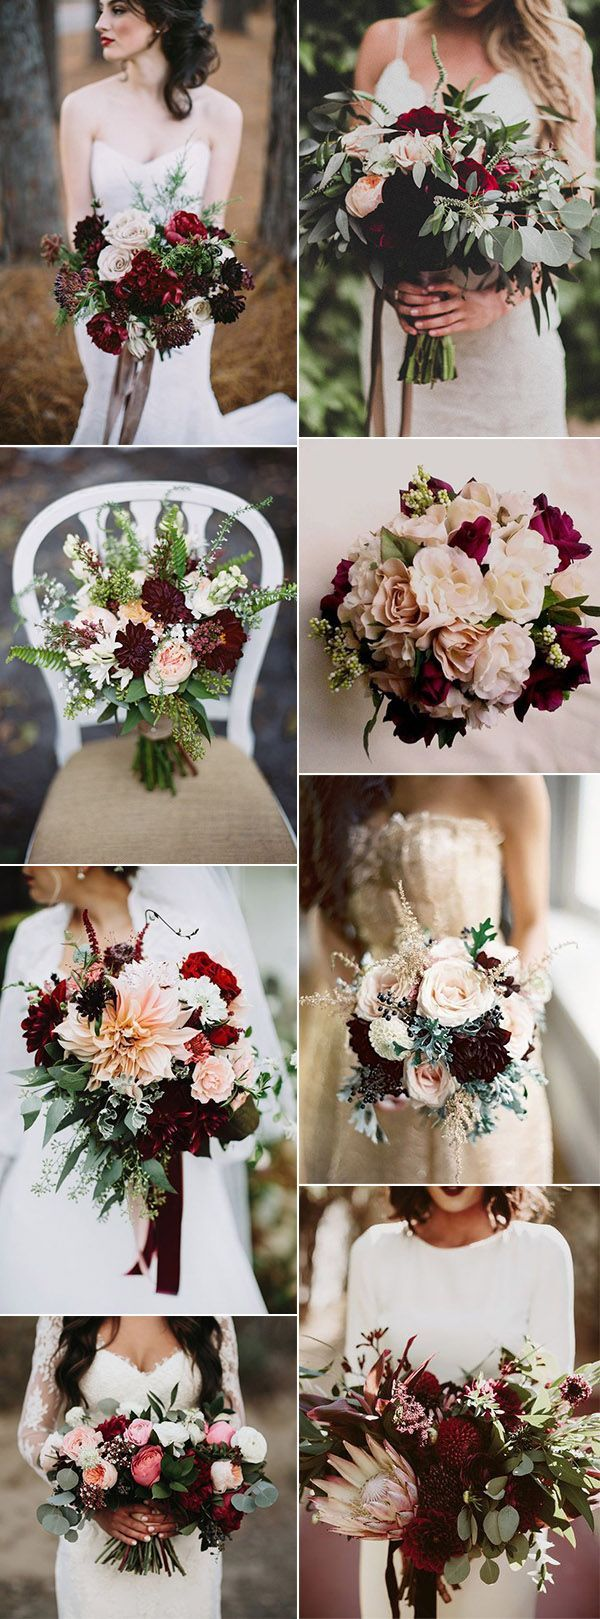 stunning-burgundy-bridal-flower-bouquets-for-all-seasons.jpg 600×1,619 pixeles